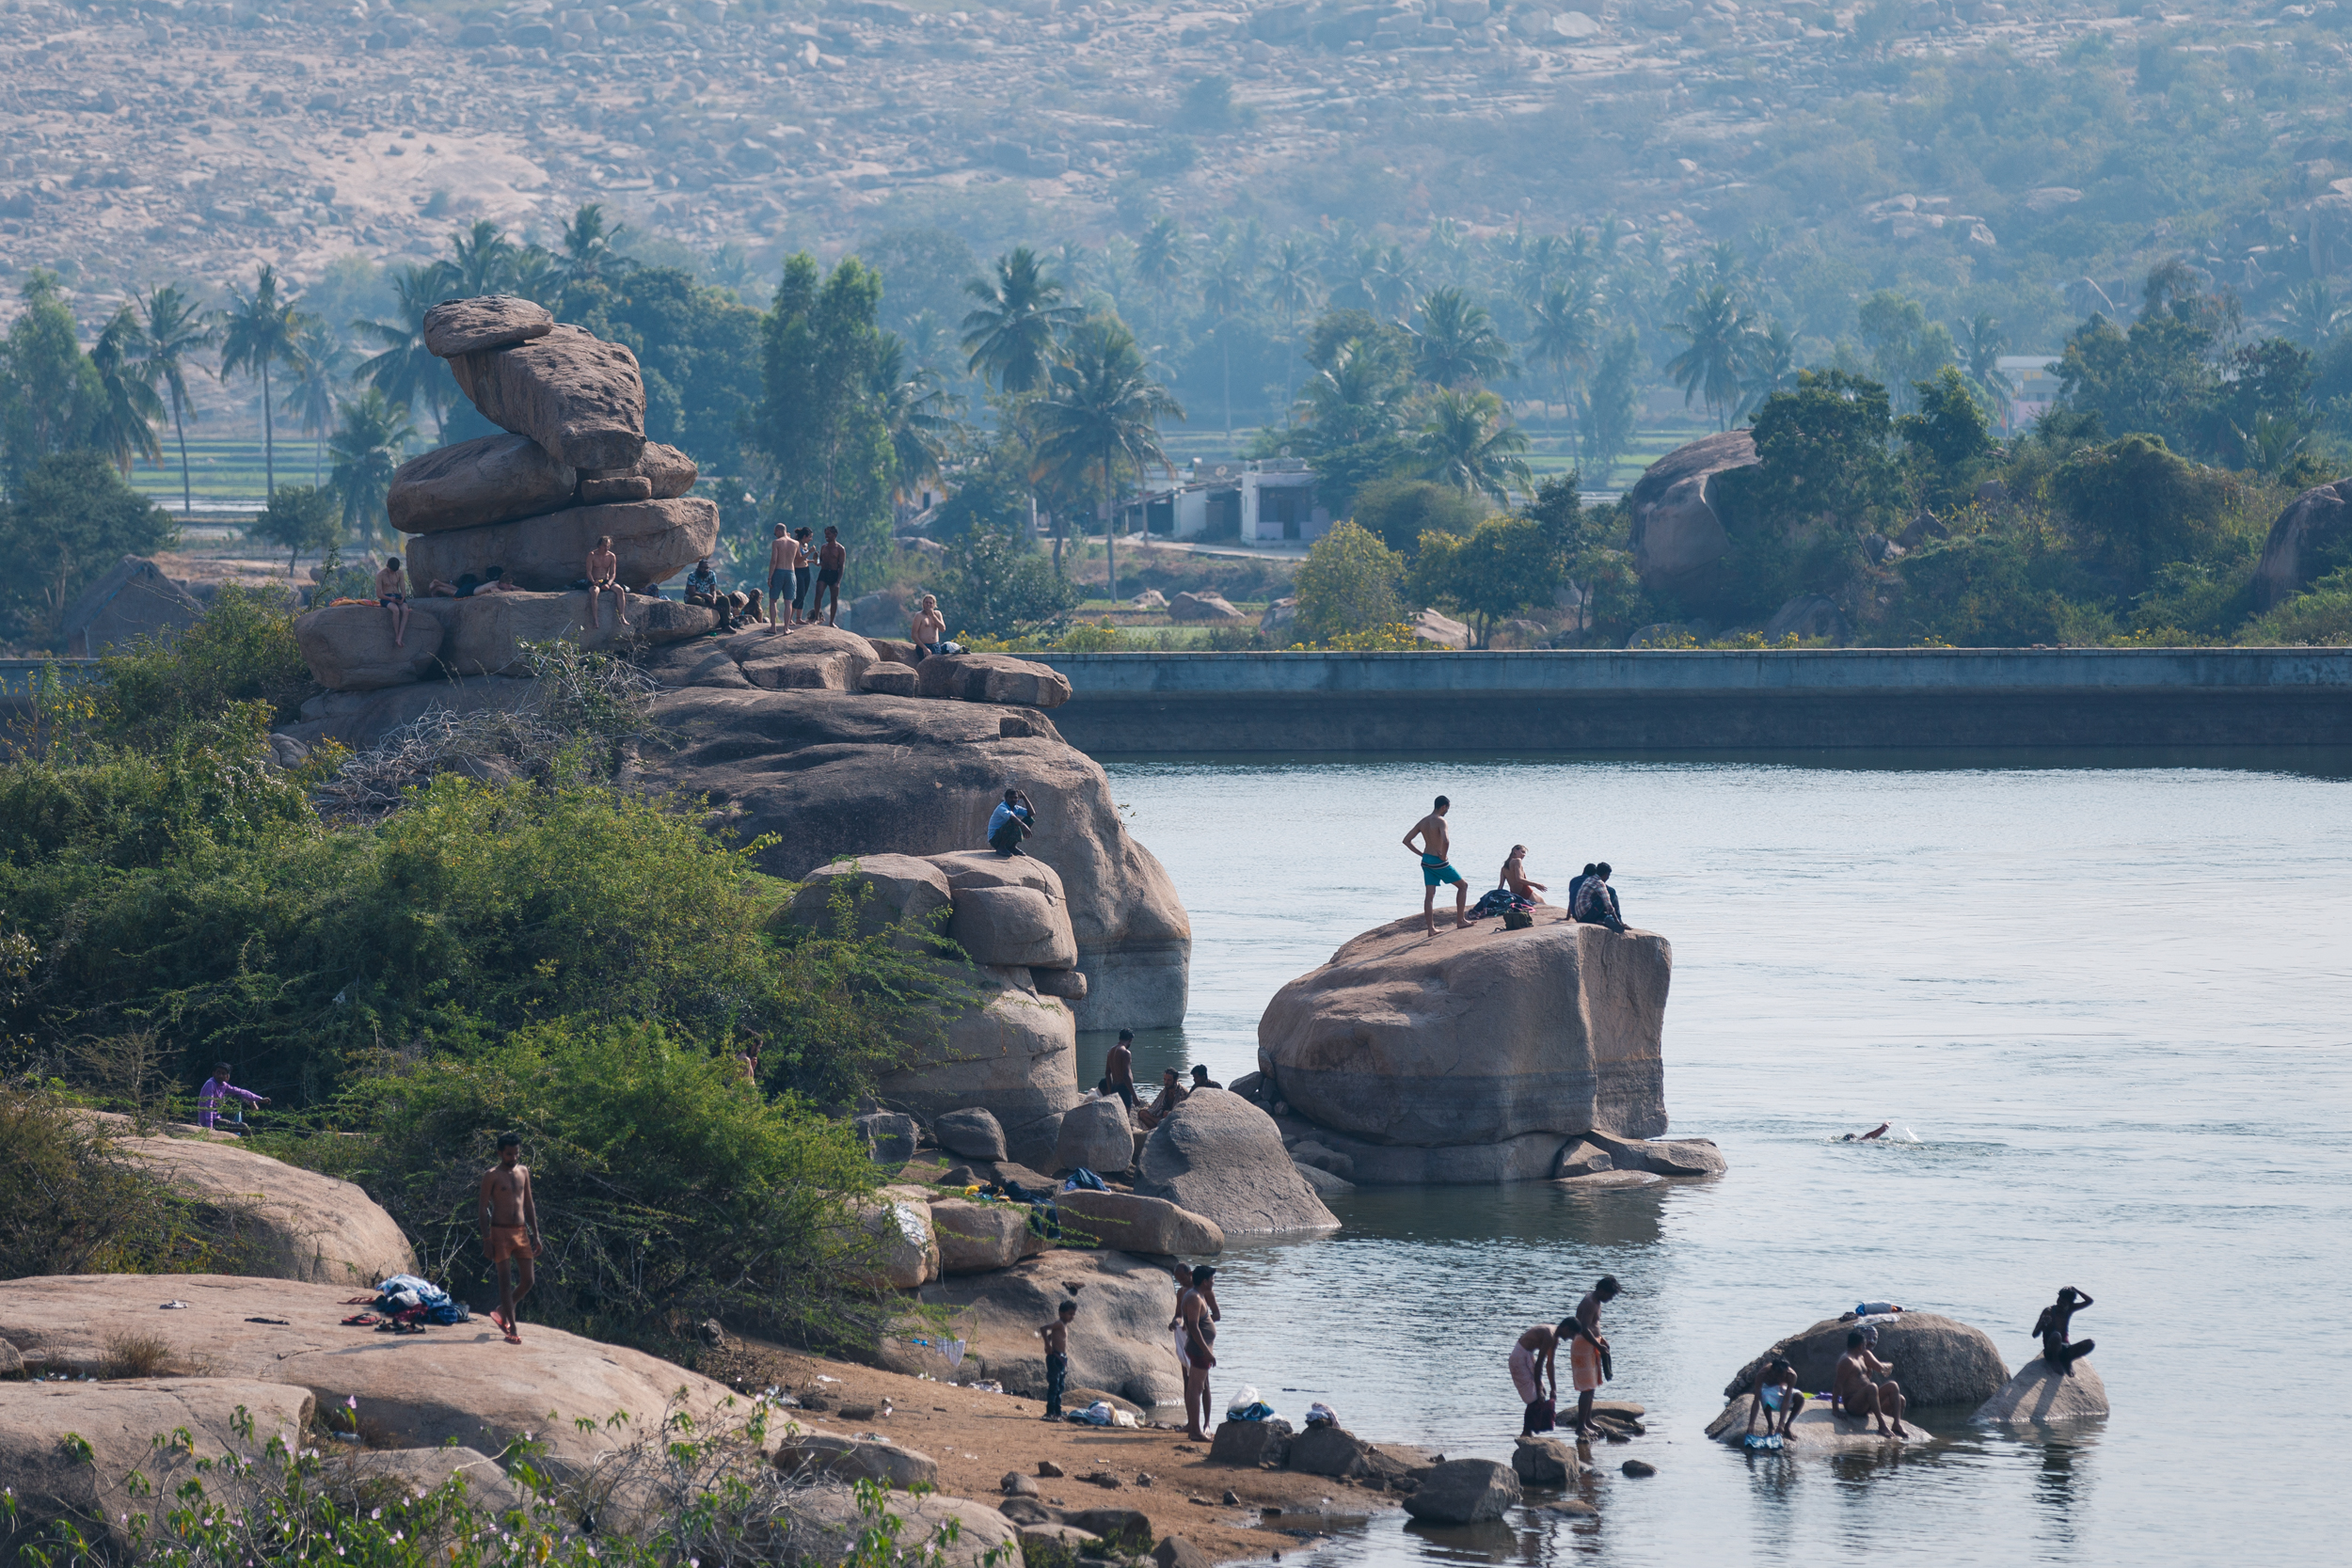 Lounge on the rocks and jump off the boulders for a refreshing swim at Sanapur Lake.